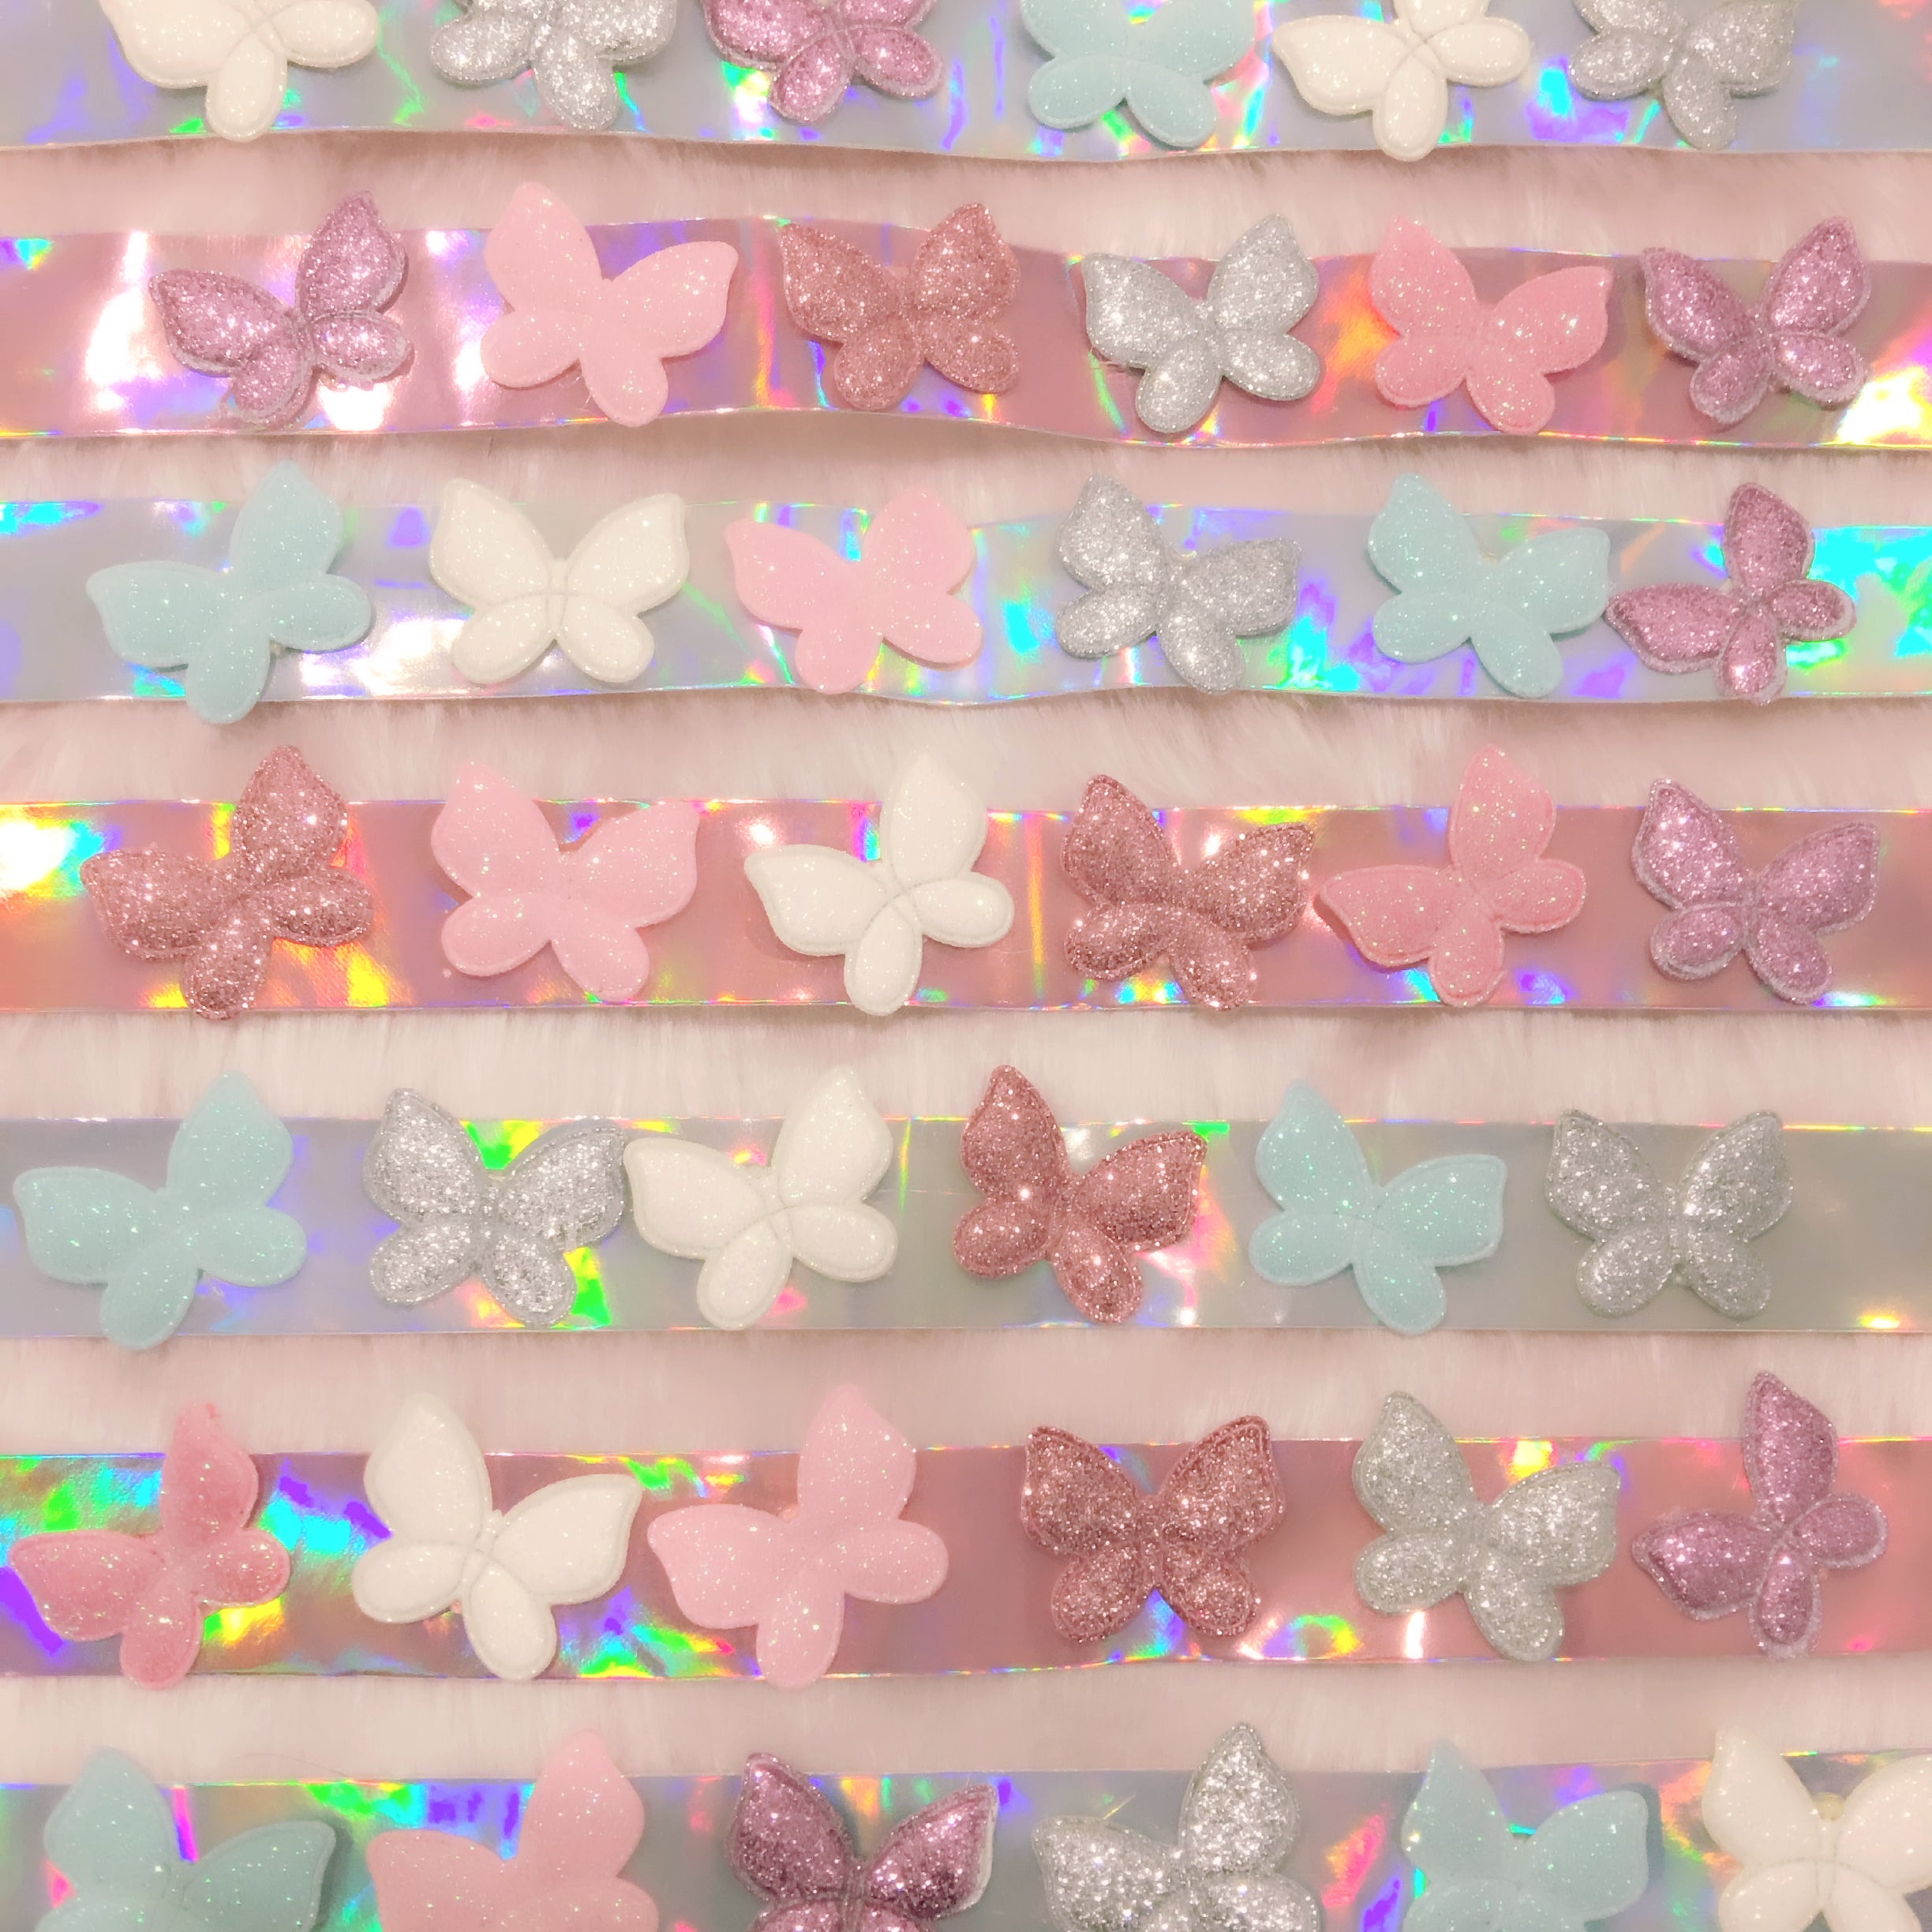 holographic choker with butterflies at BABY VOODOO - shop iridescent jewellery fashion